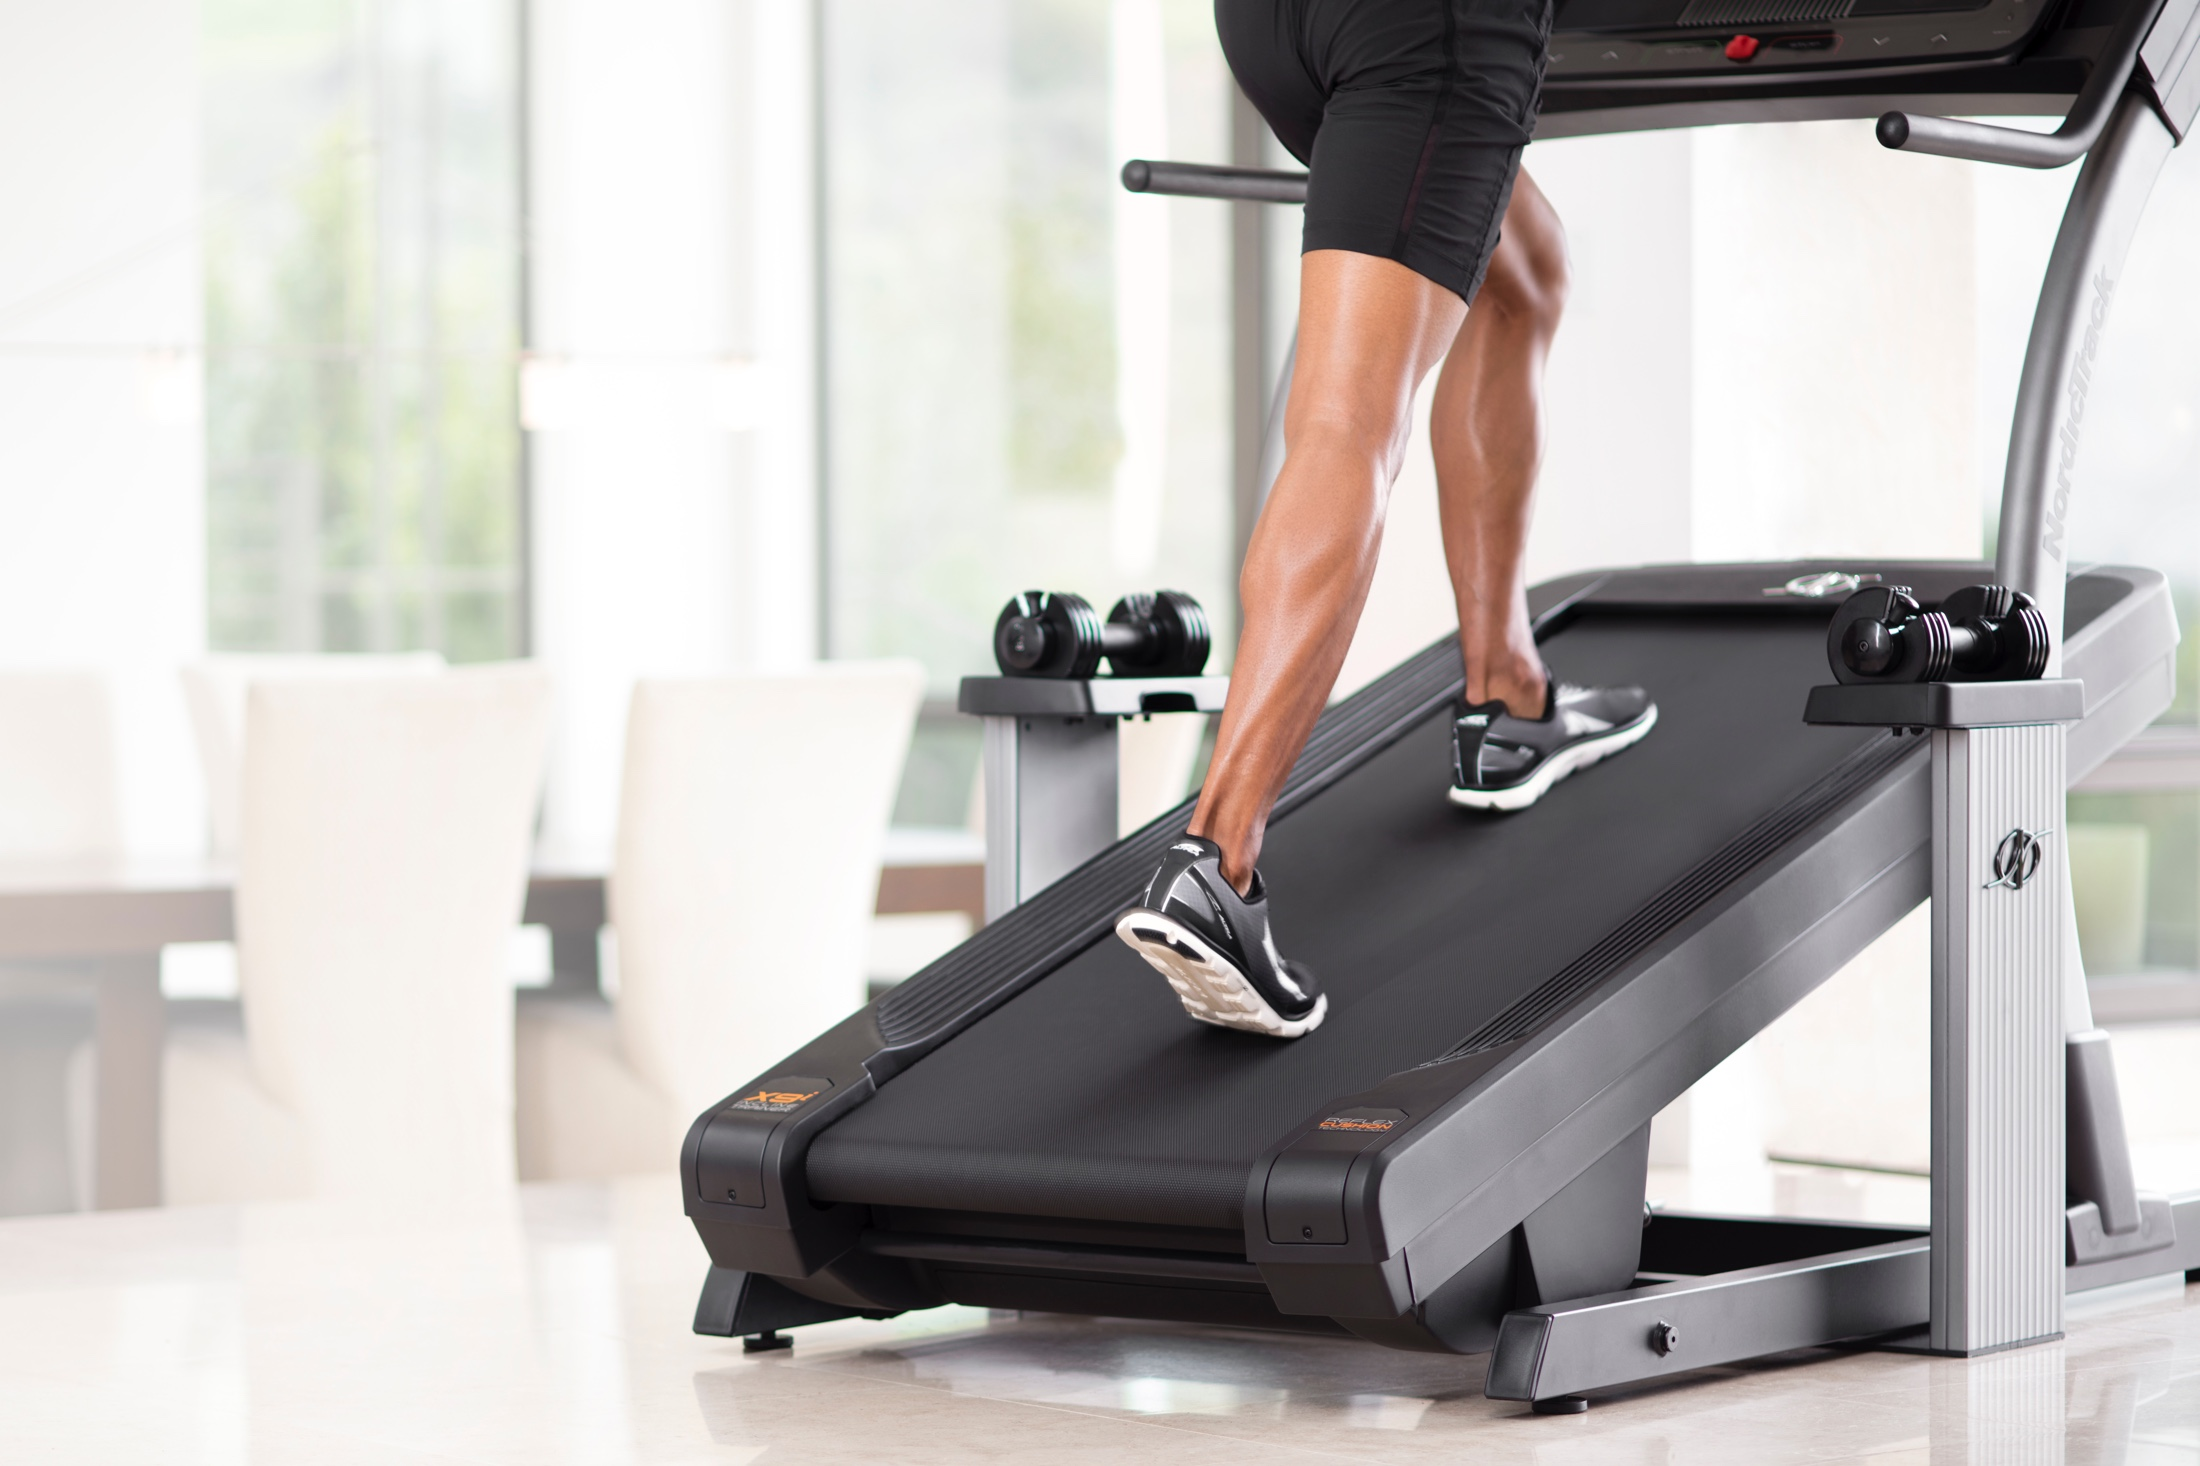 NordicTrack X9i Incline Trainer gallery image 6